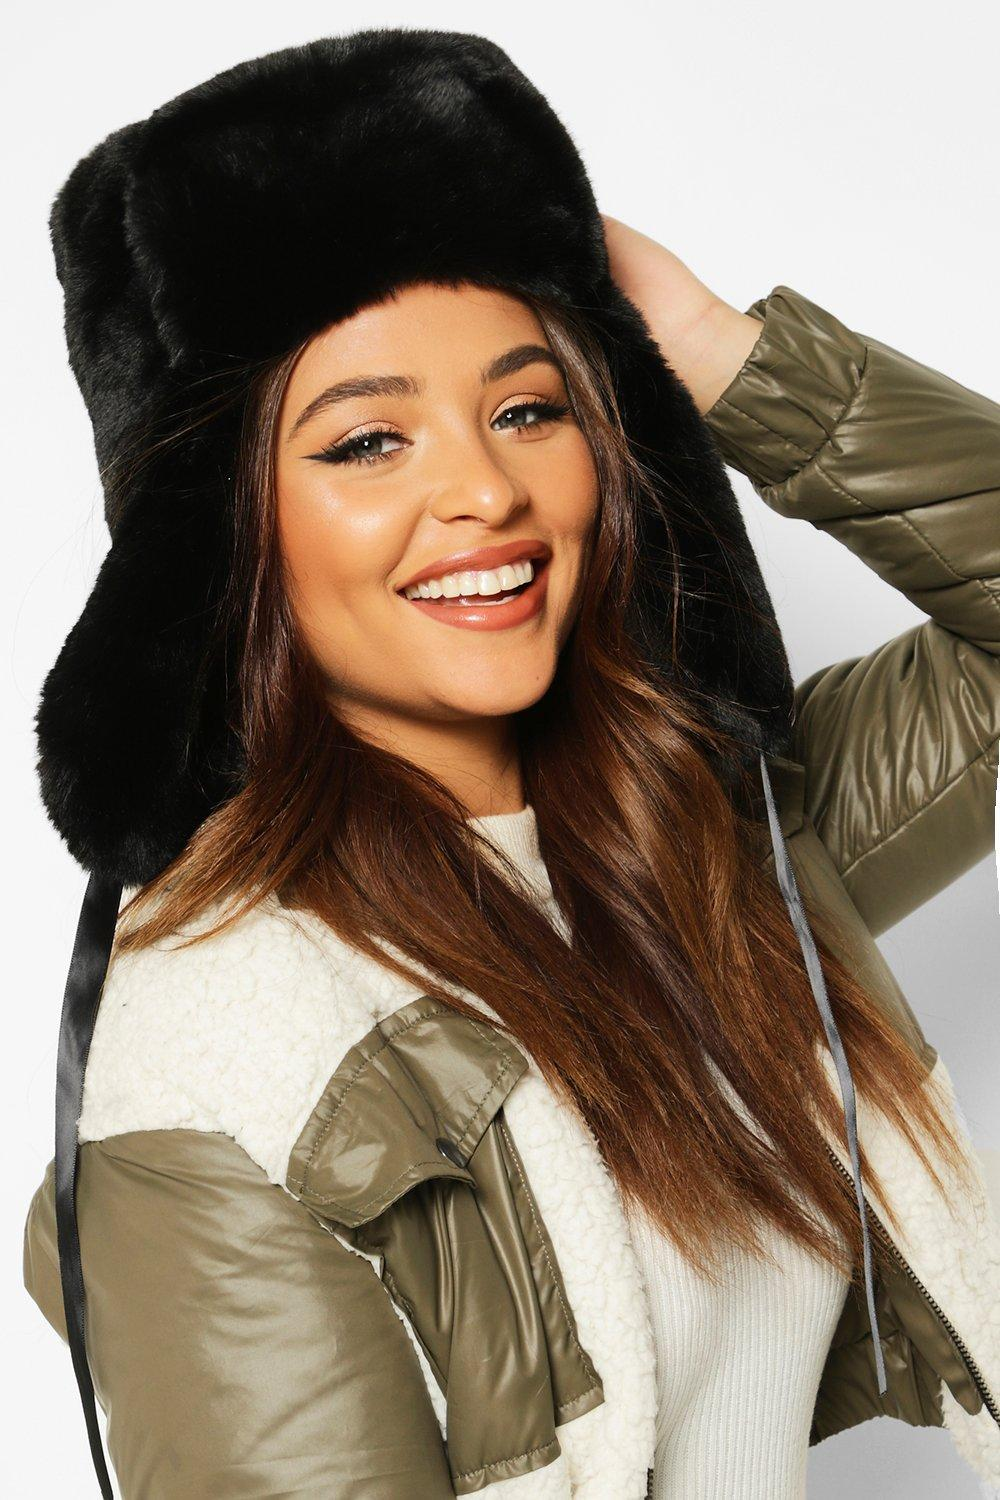 boohoo Womens Faux Fur Trapper Hat - Black - One Size, Black